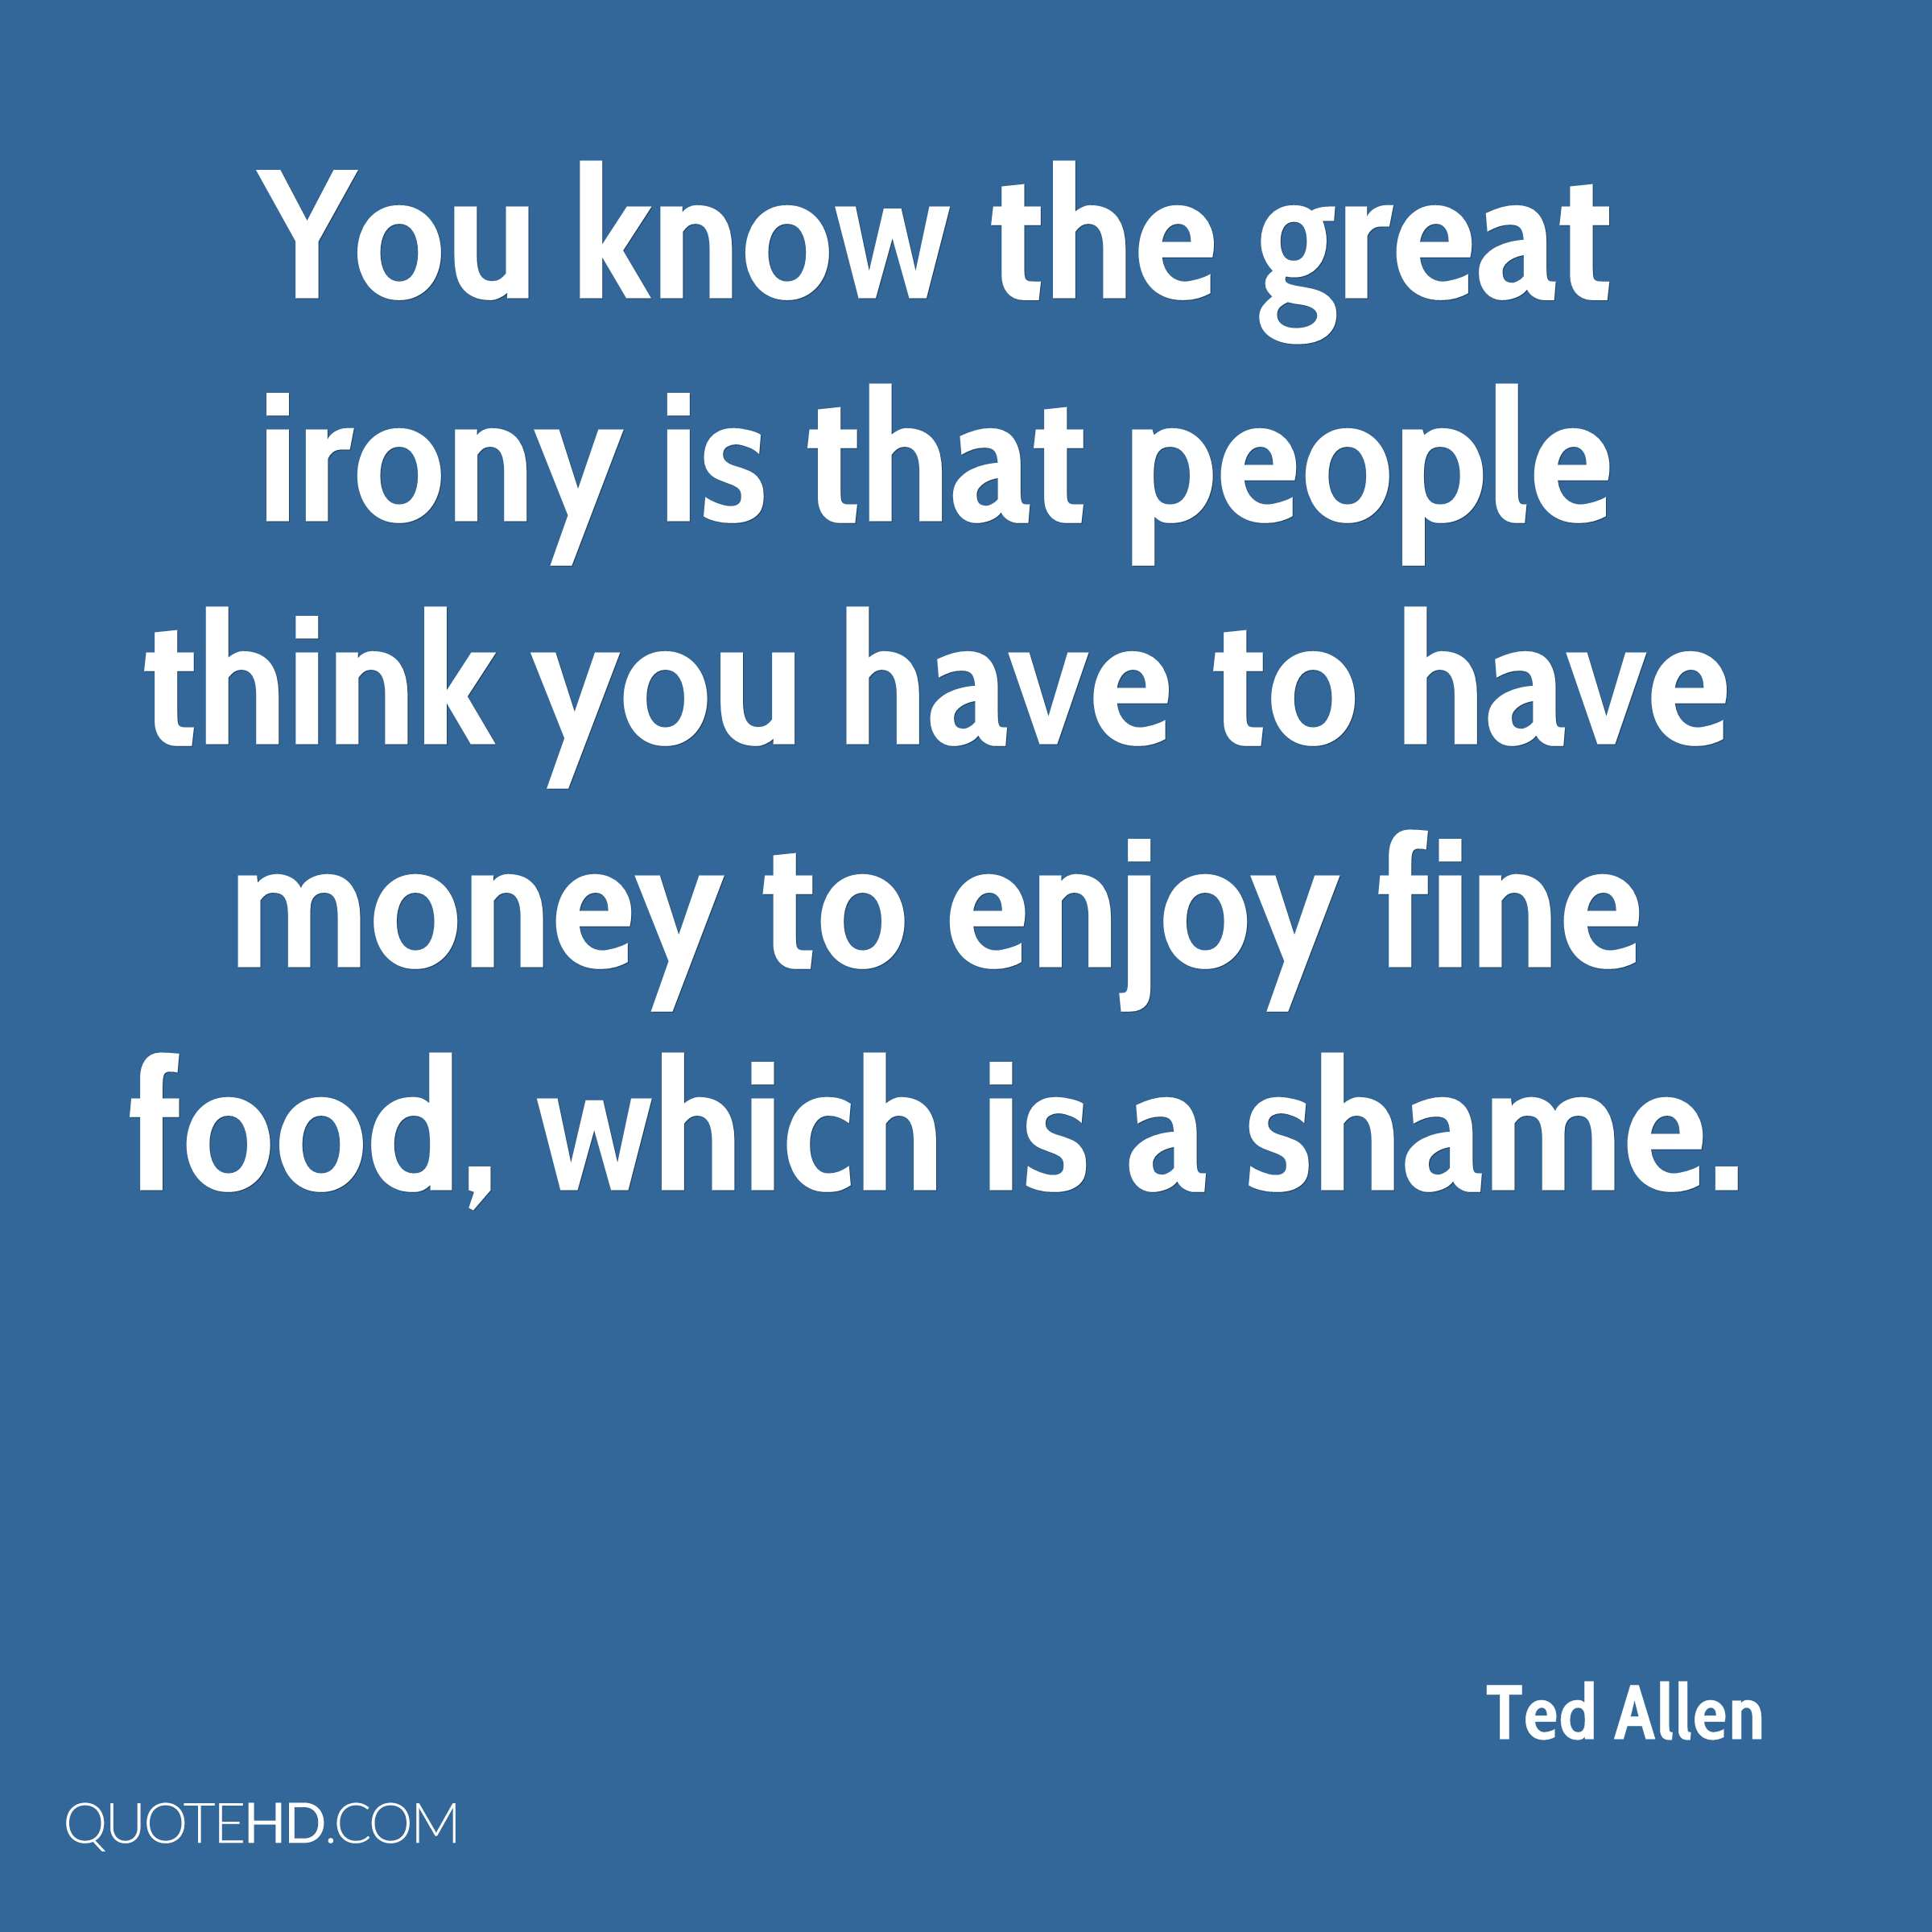 You know the great irony is that people think you have to have money to enjoy fine food, which is a shame.